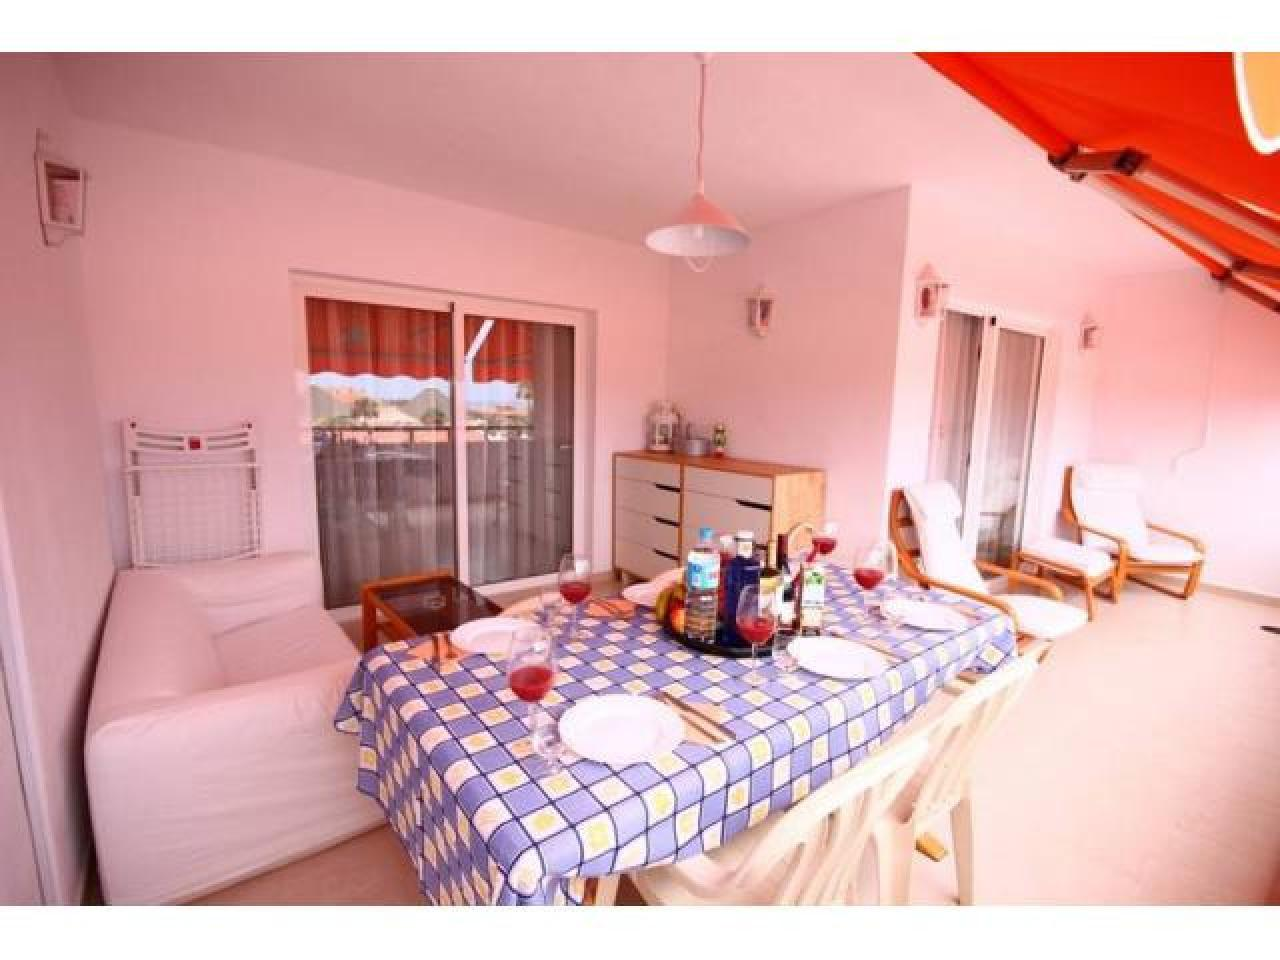 Apartment in Tenerife for rent - 5